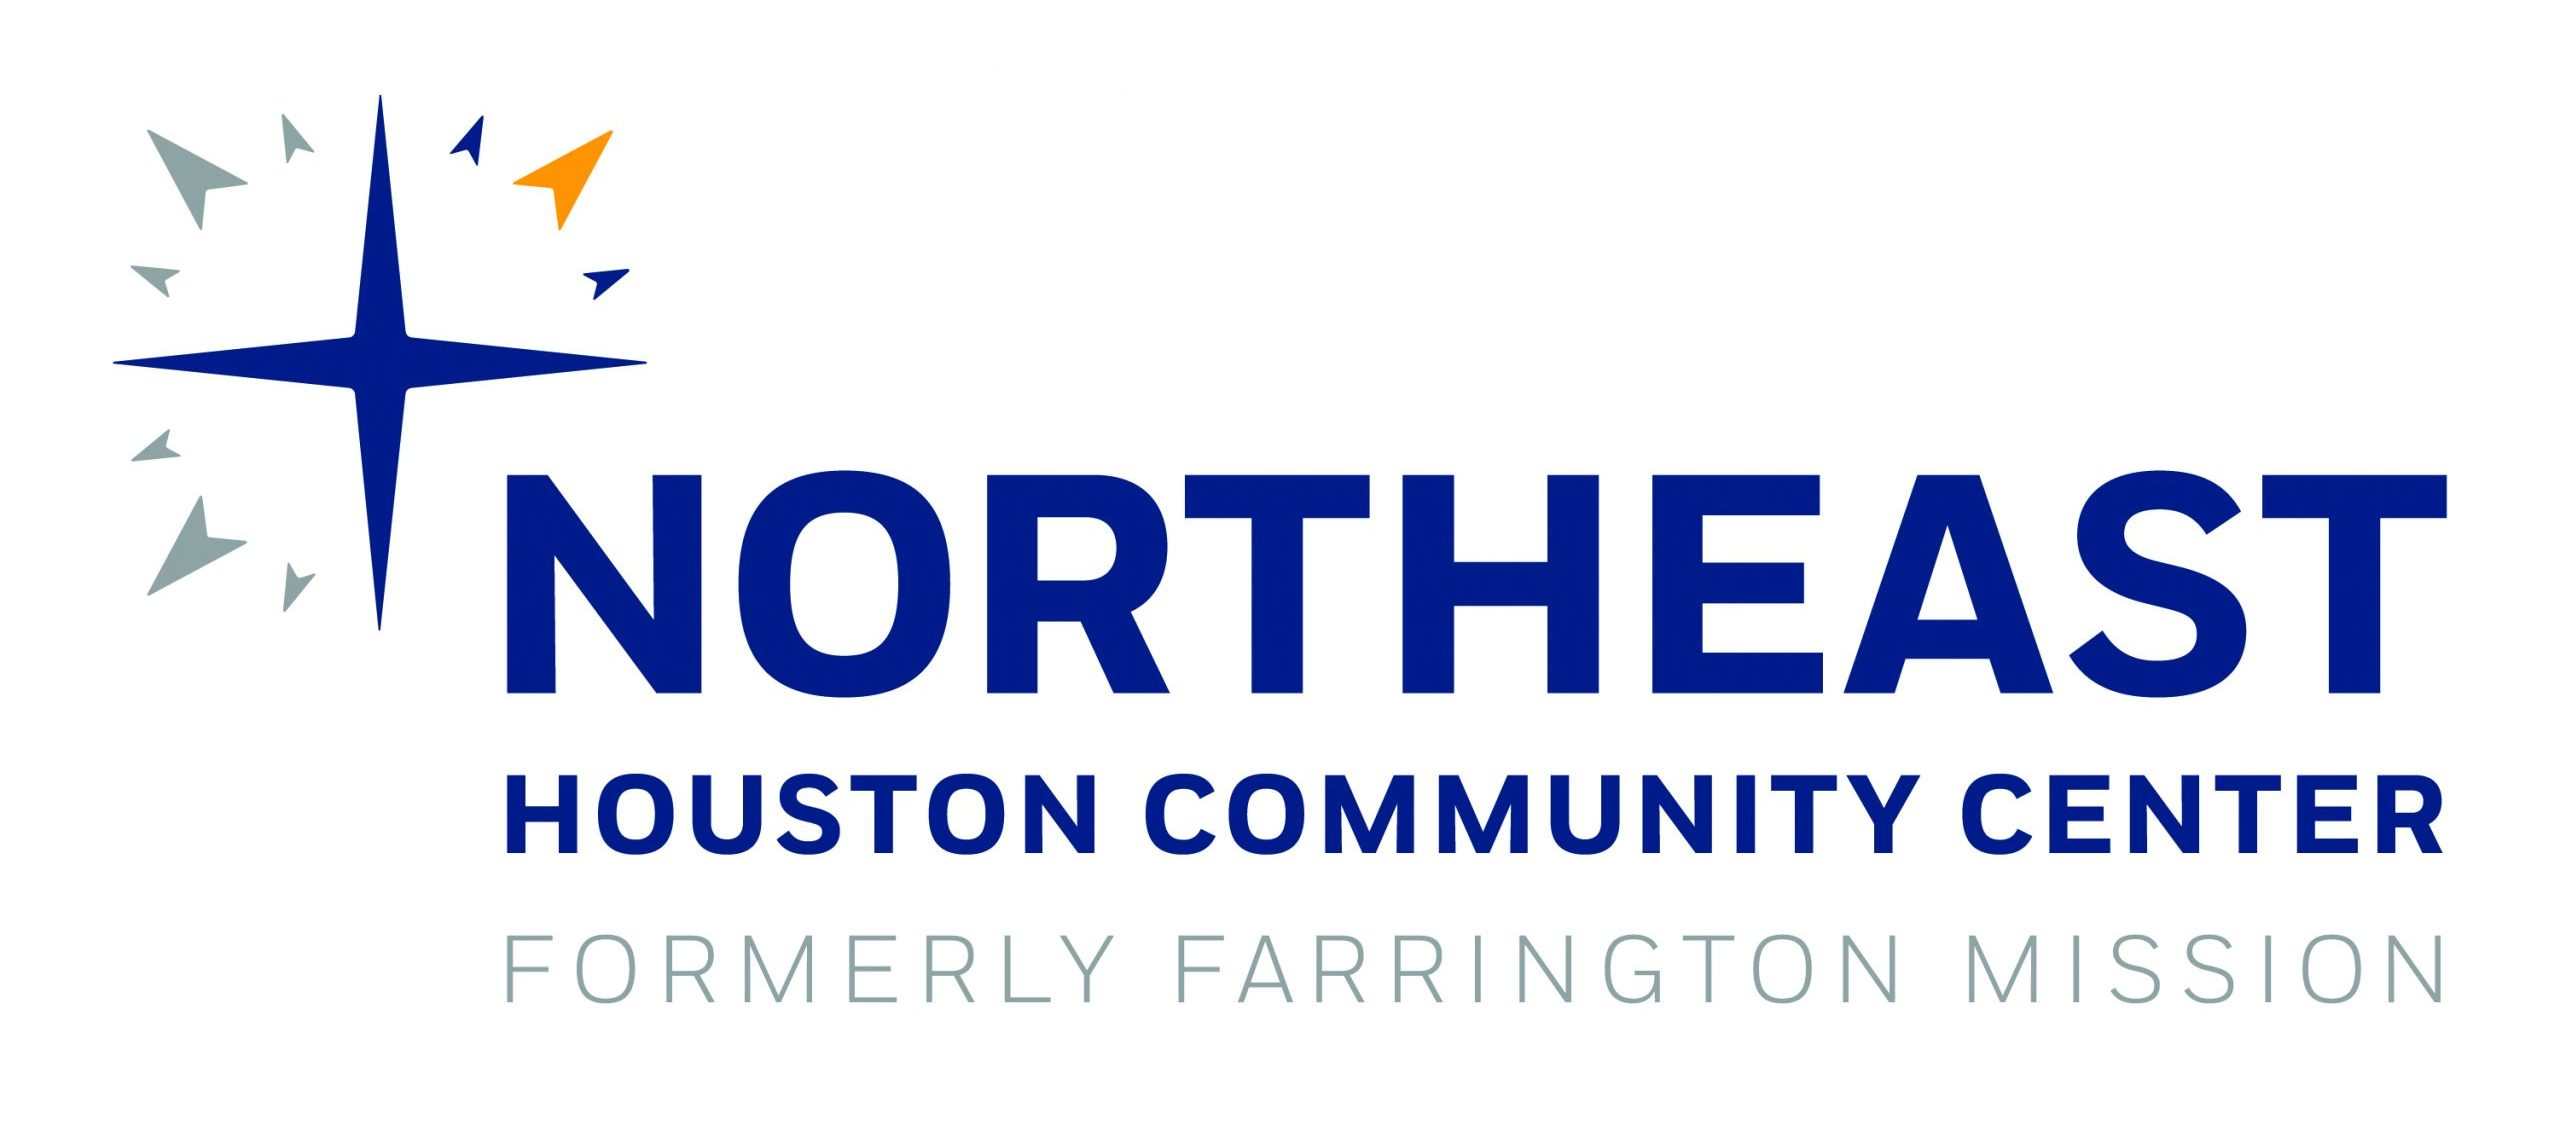 Northeast Houston Community Center